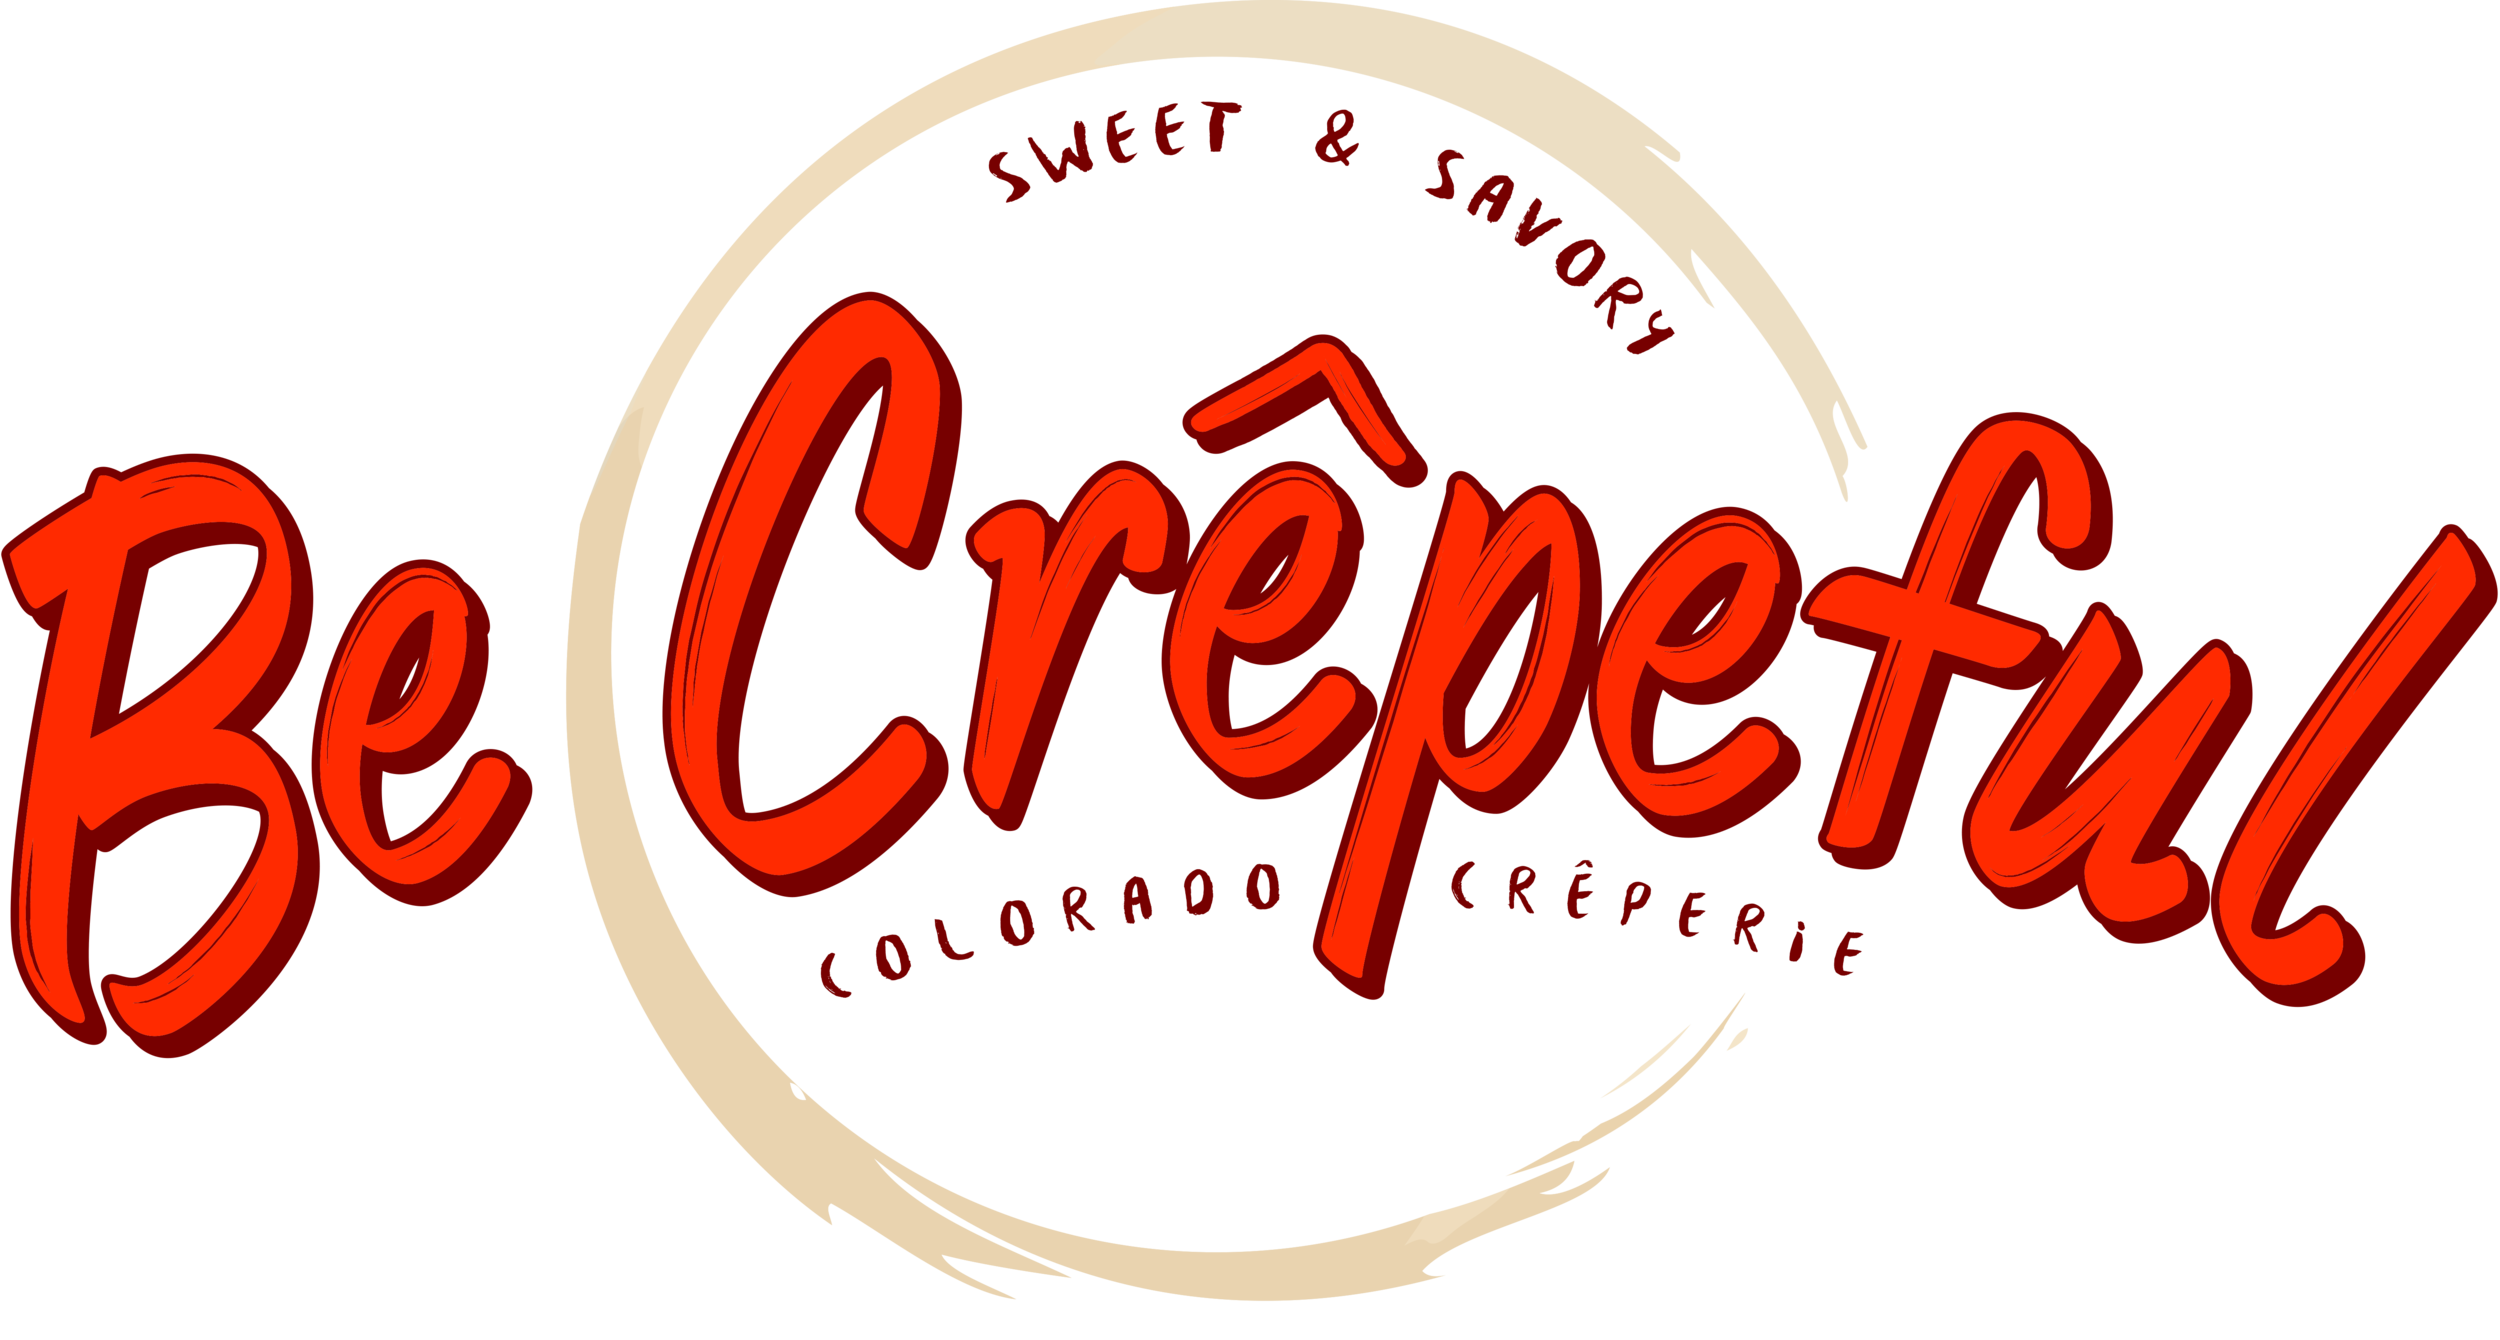 BE CREPEFUL FINAL LOGO.png